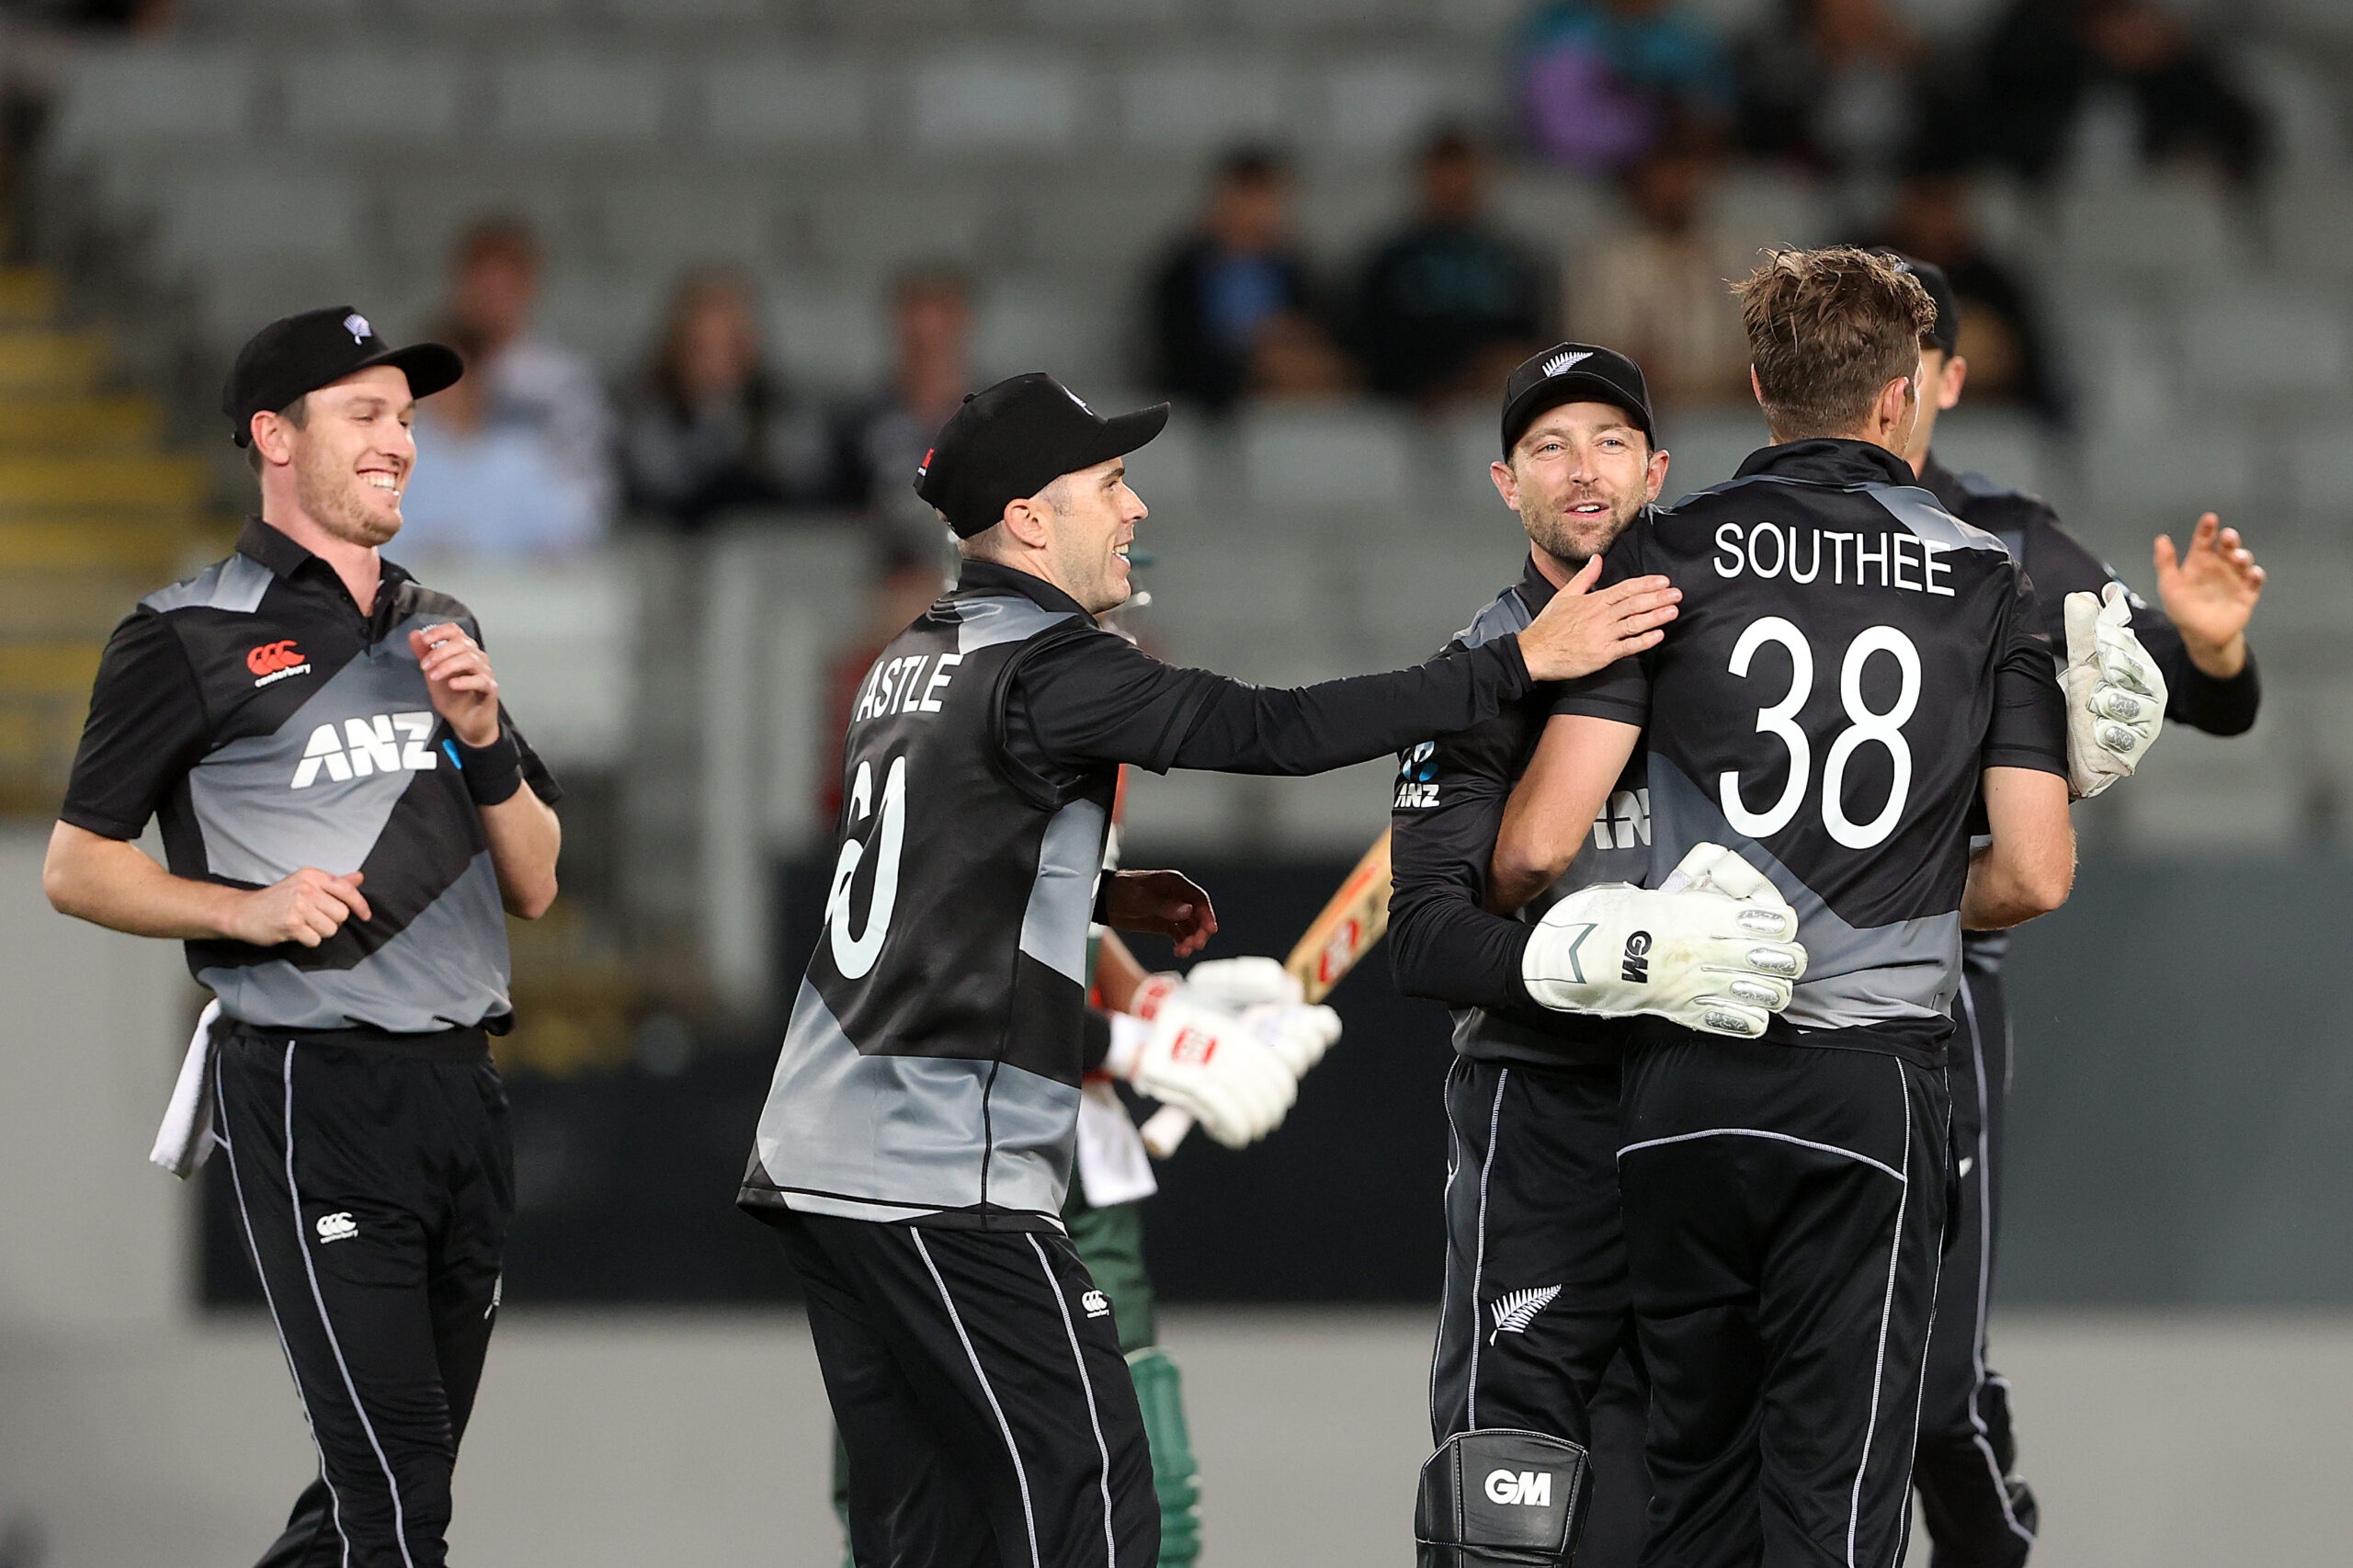 New Zealand vs Bangladesh 2021, 3rd T20I: Blackcaps Complete Whitewash After Another Dominant Victory In Rain-Curtailed Game